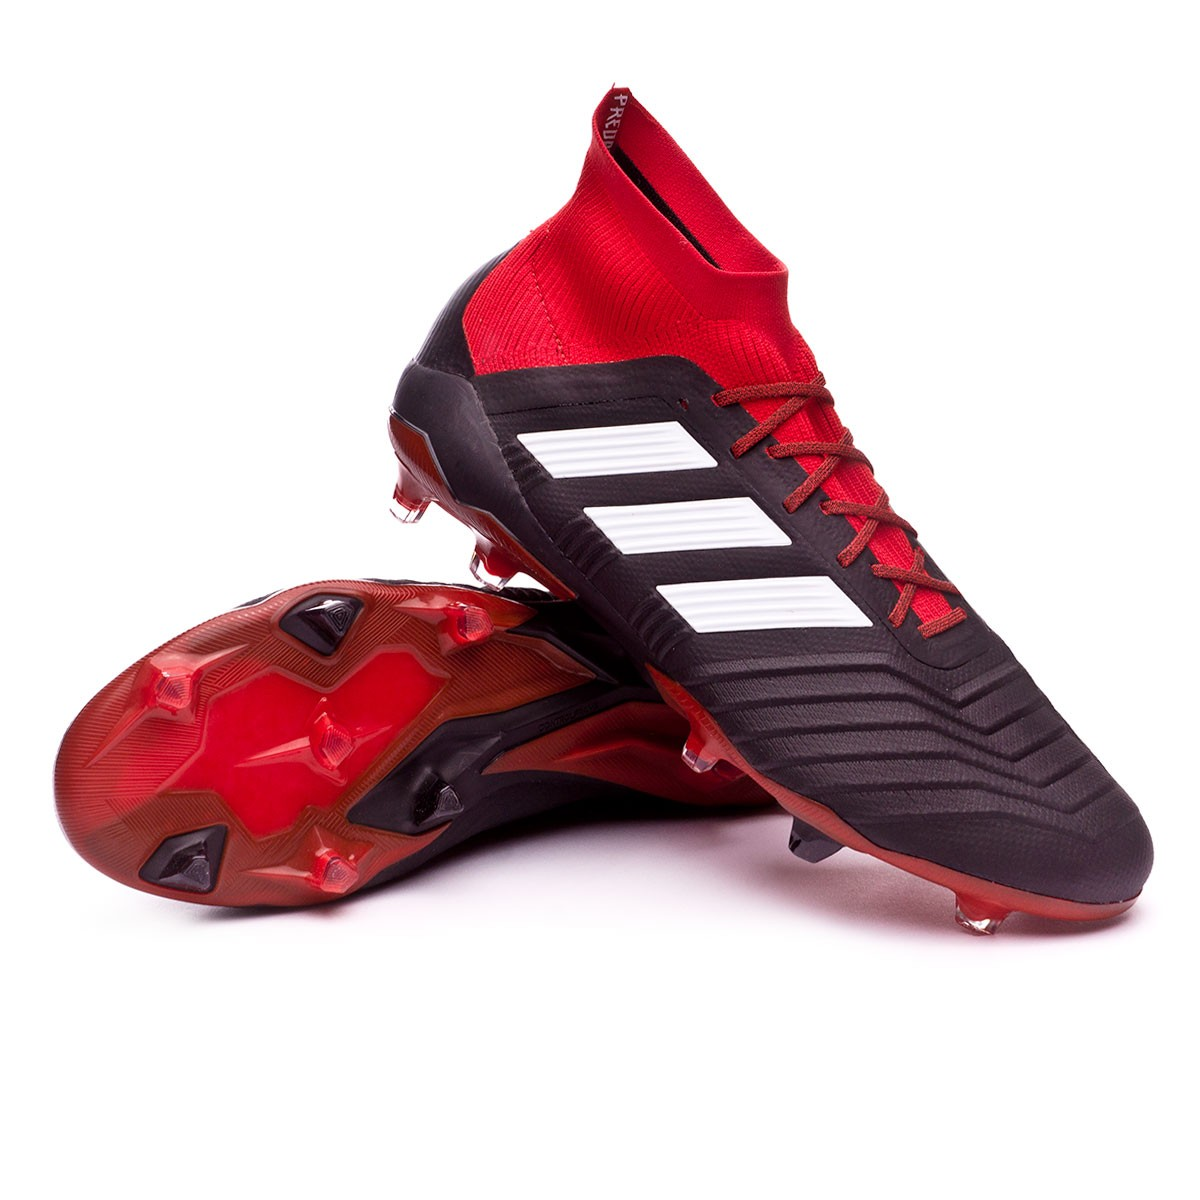 Descripción del negocio interfaz estera  Football Boots adidas Predator 18.1 FG Core black-White-Red - Football  store Fútbol Emotion